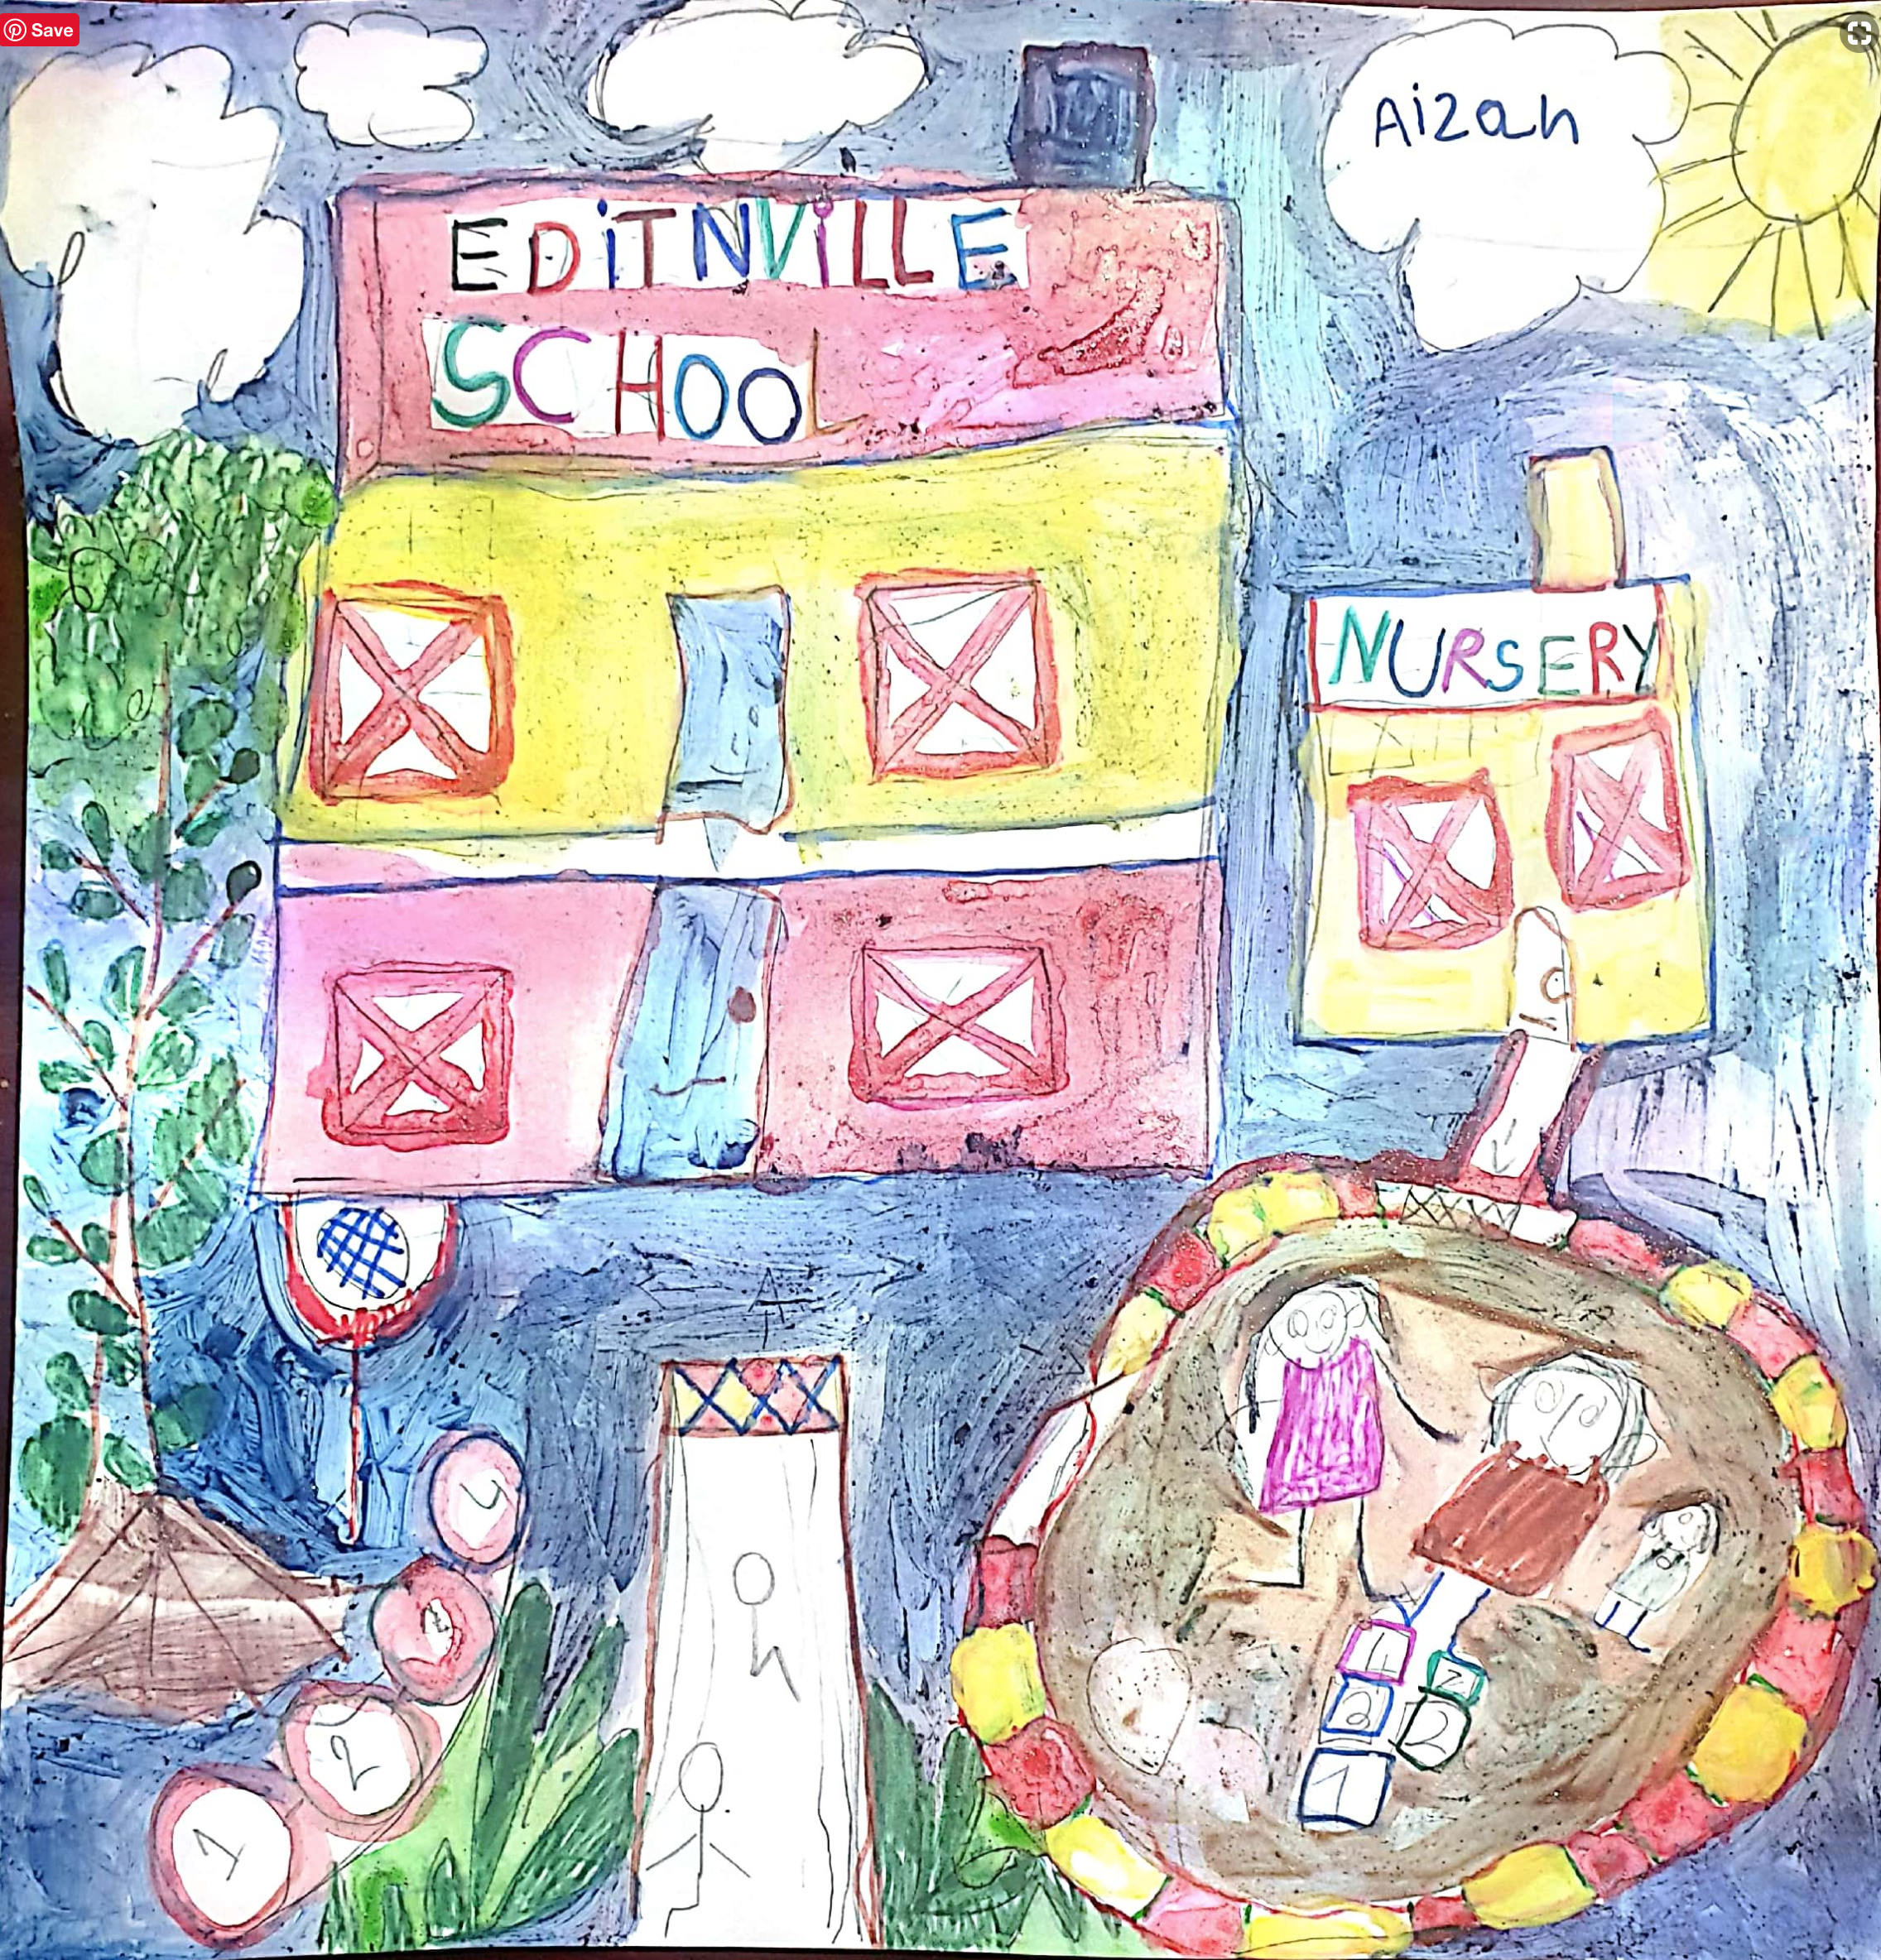 Child's drawing of a school.